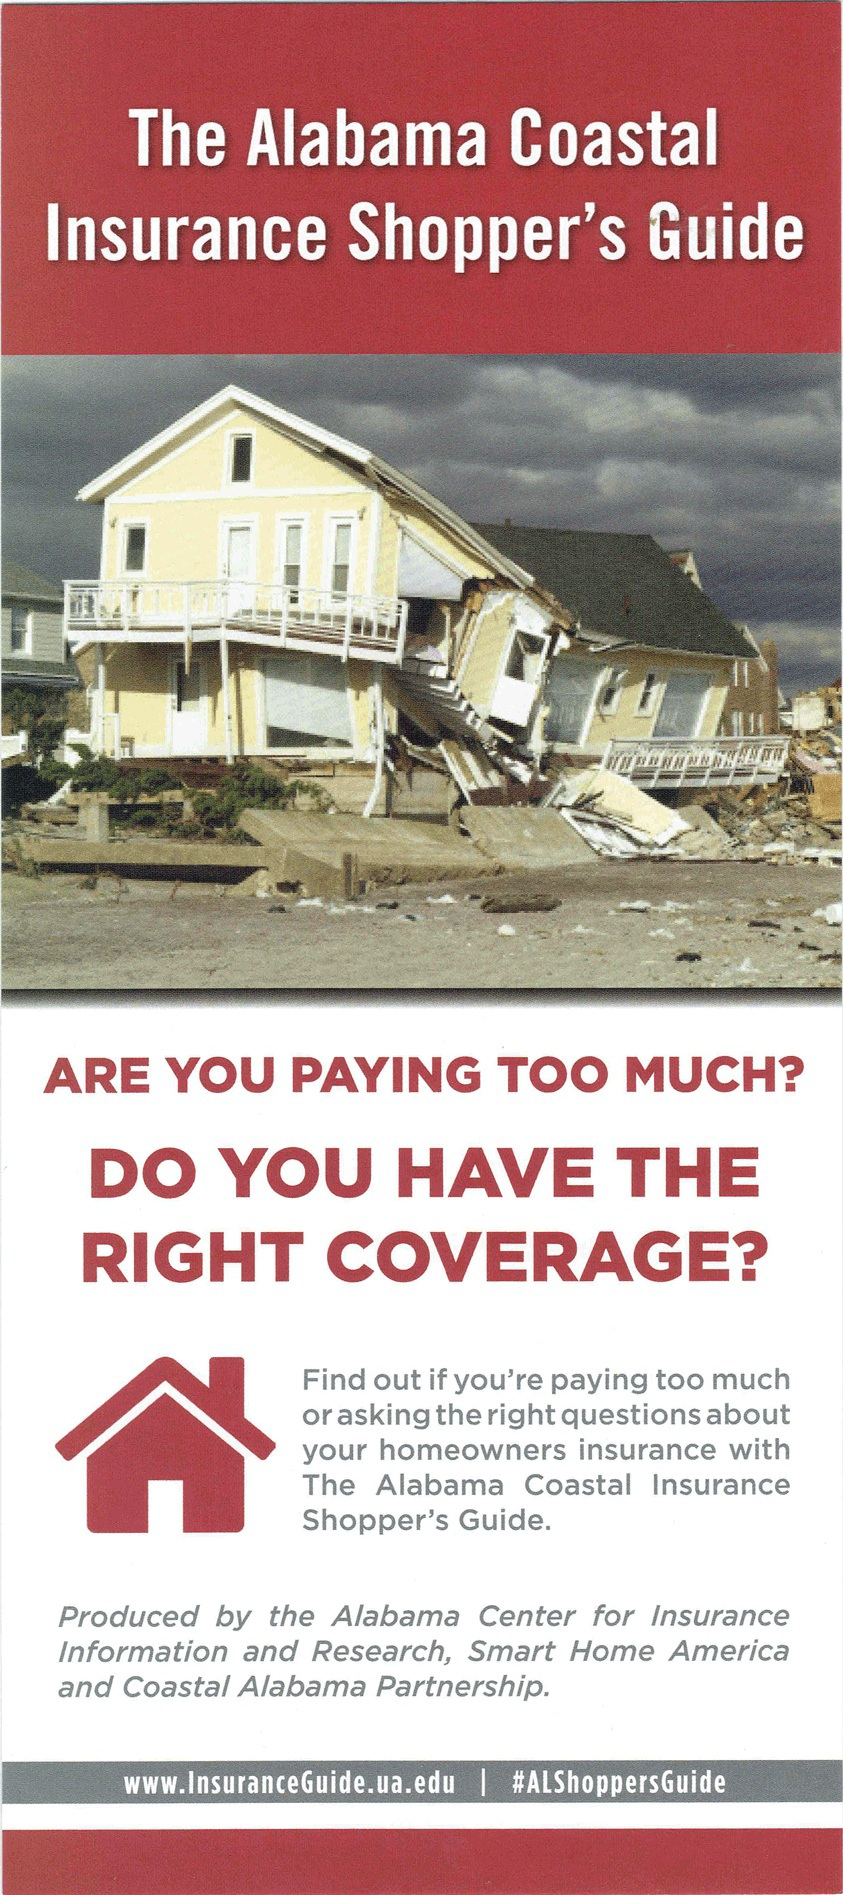 Top 10 Questions To Ask Homeowners Insurance Smart Home America And Uofalabama